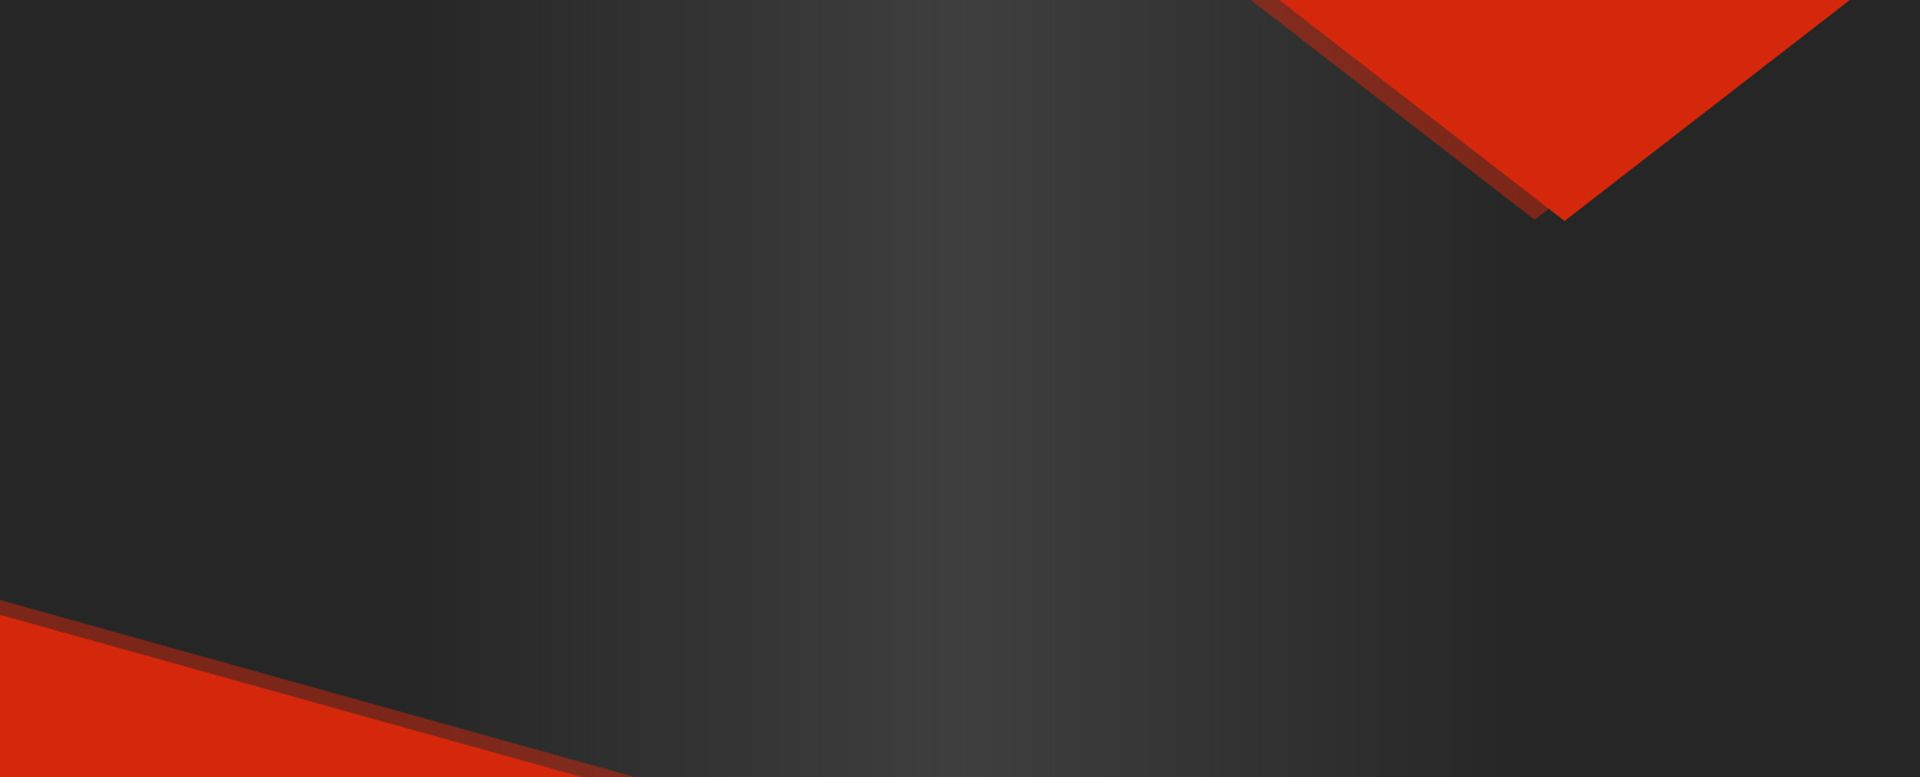 Cool Red And Black Background Red And Black Background Photoshop Backgrounds Free Black Background Images